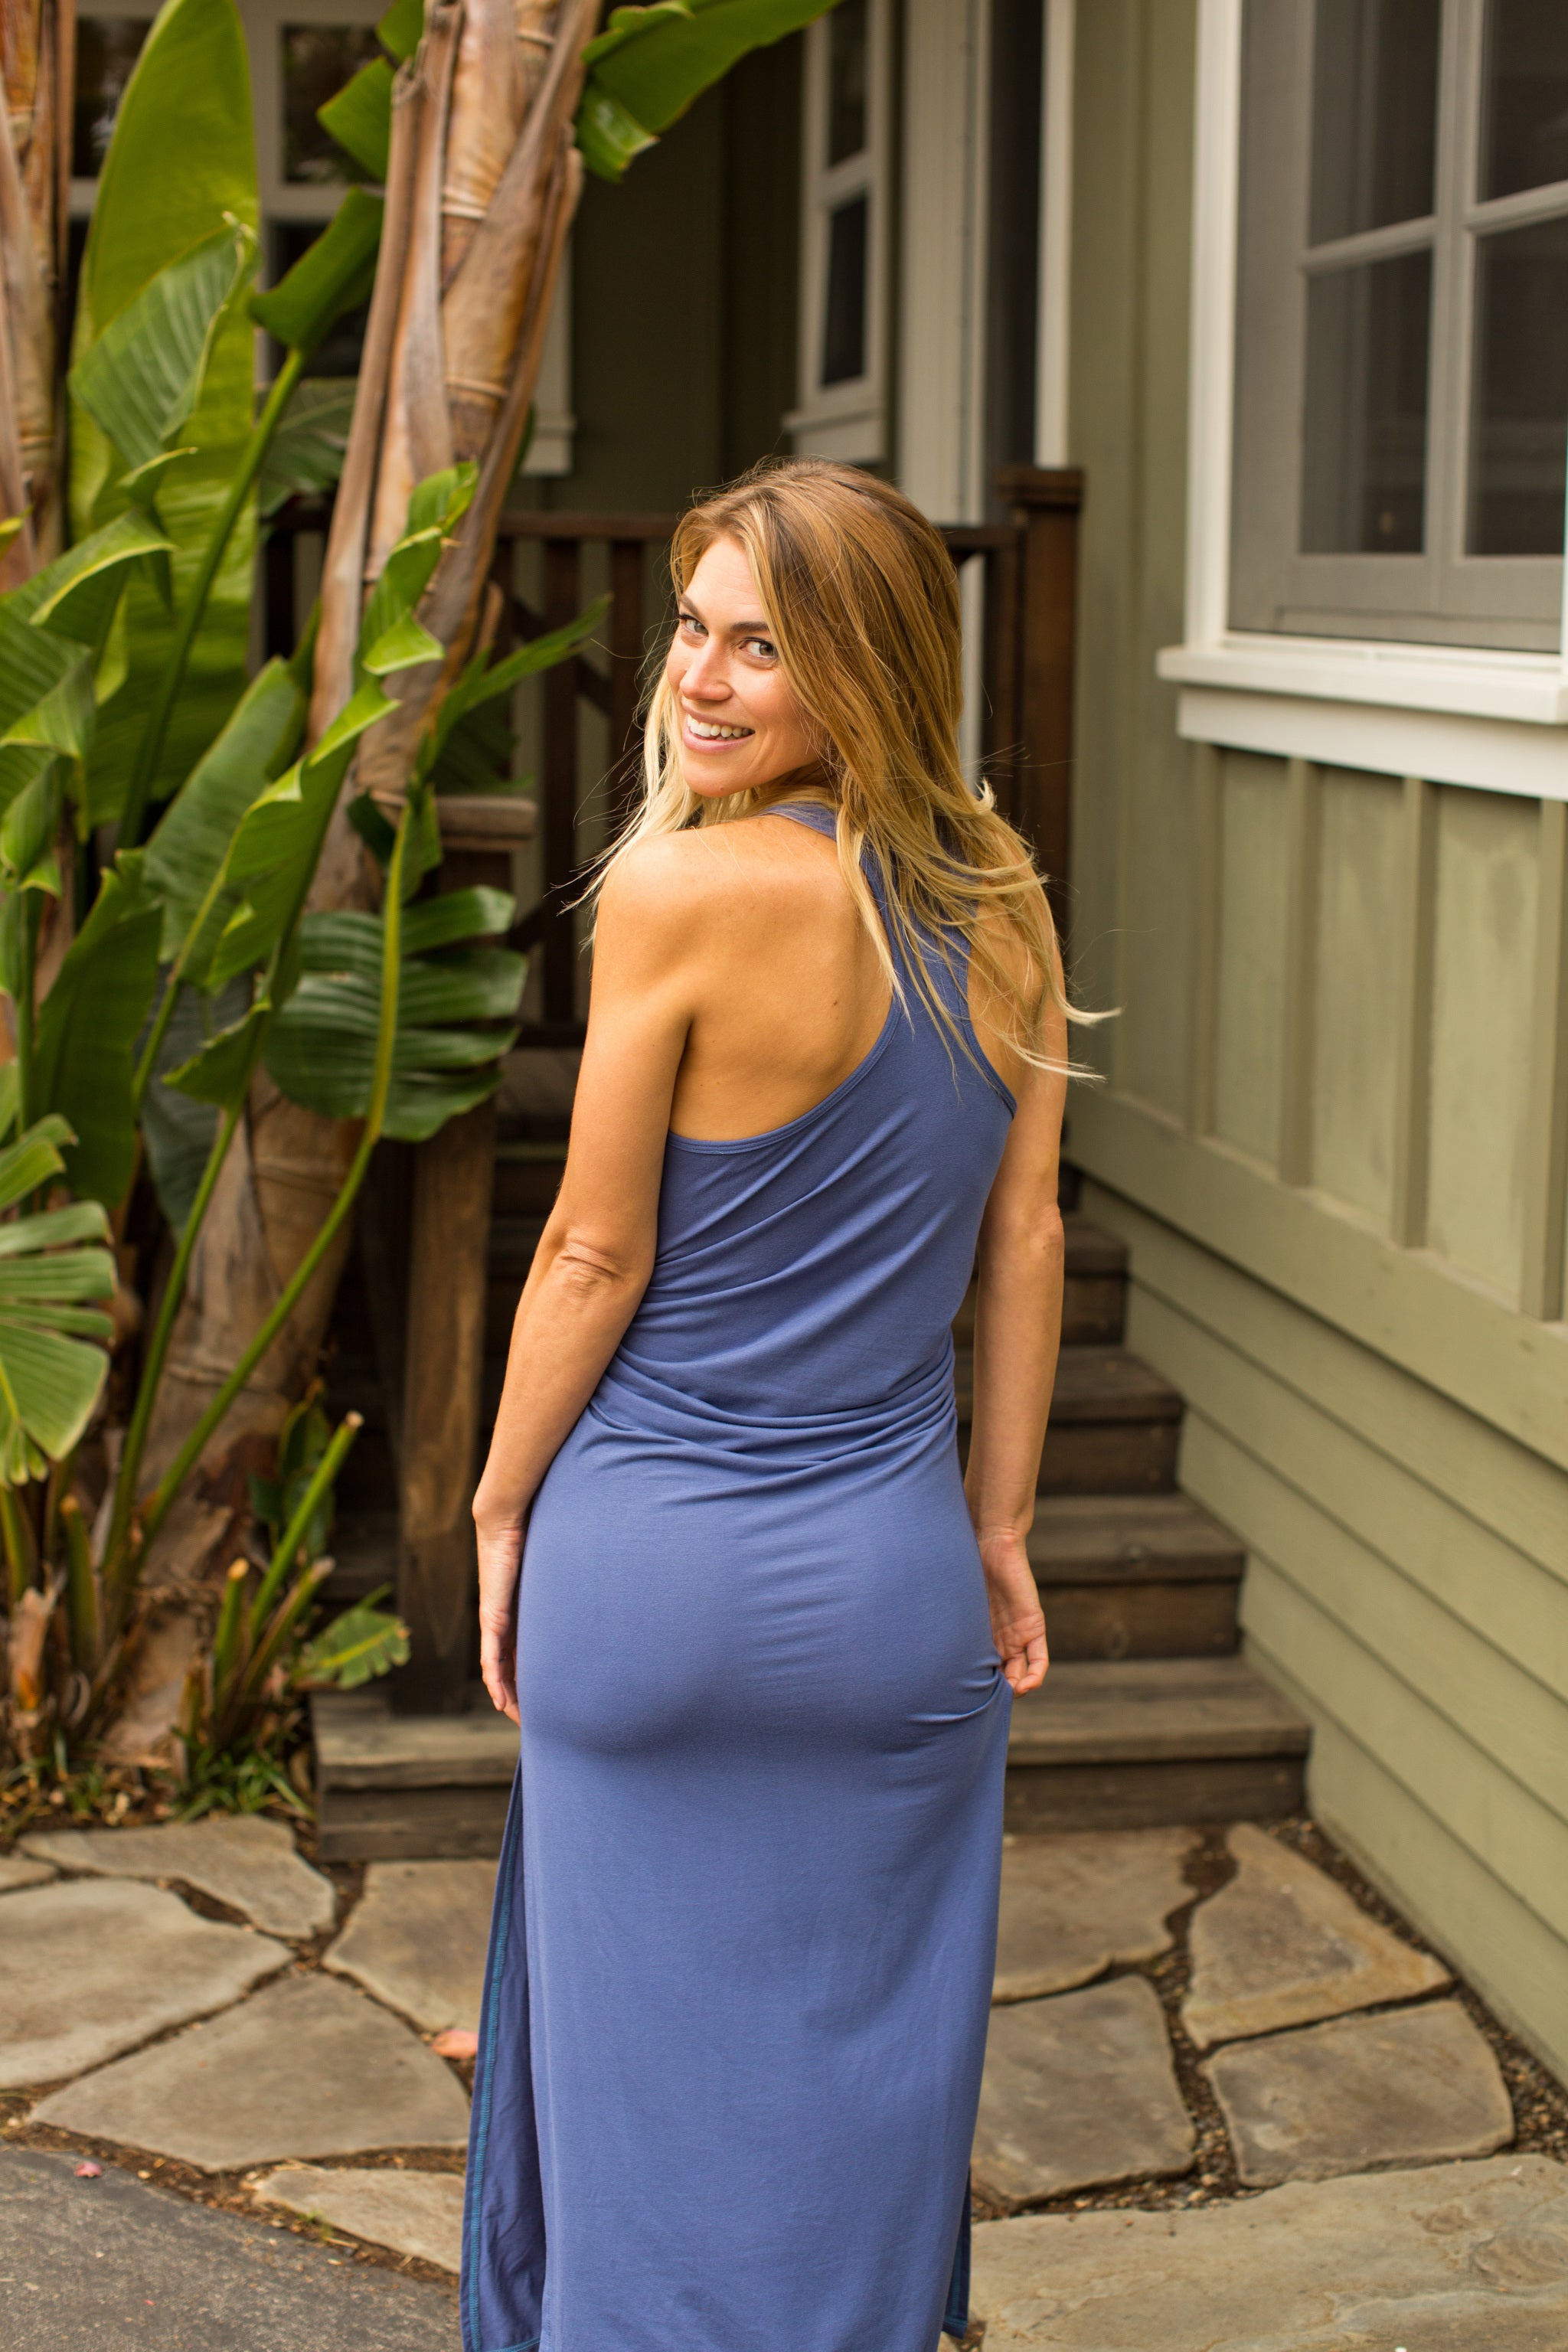 RACER BACK TANK DRESS